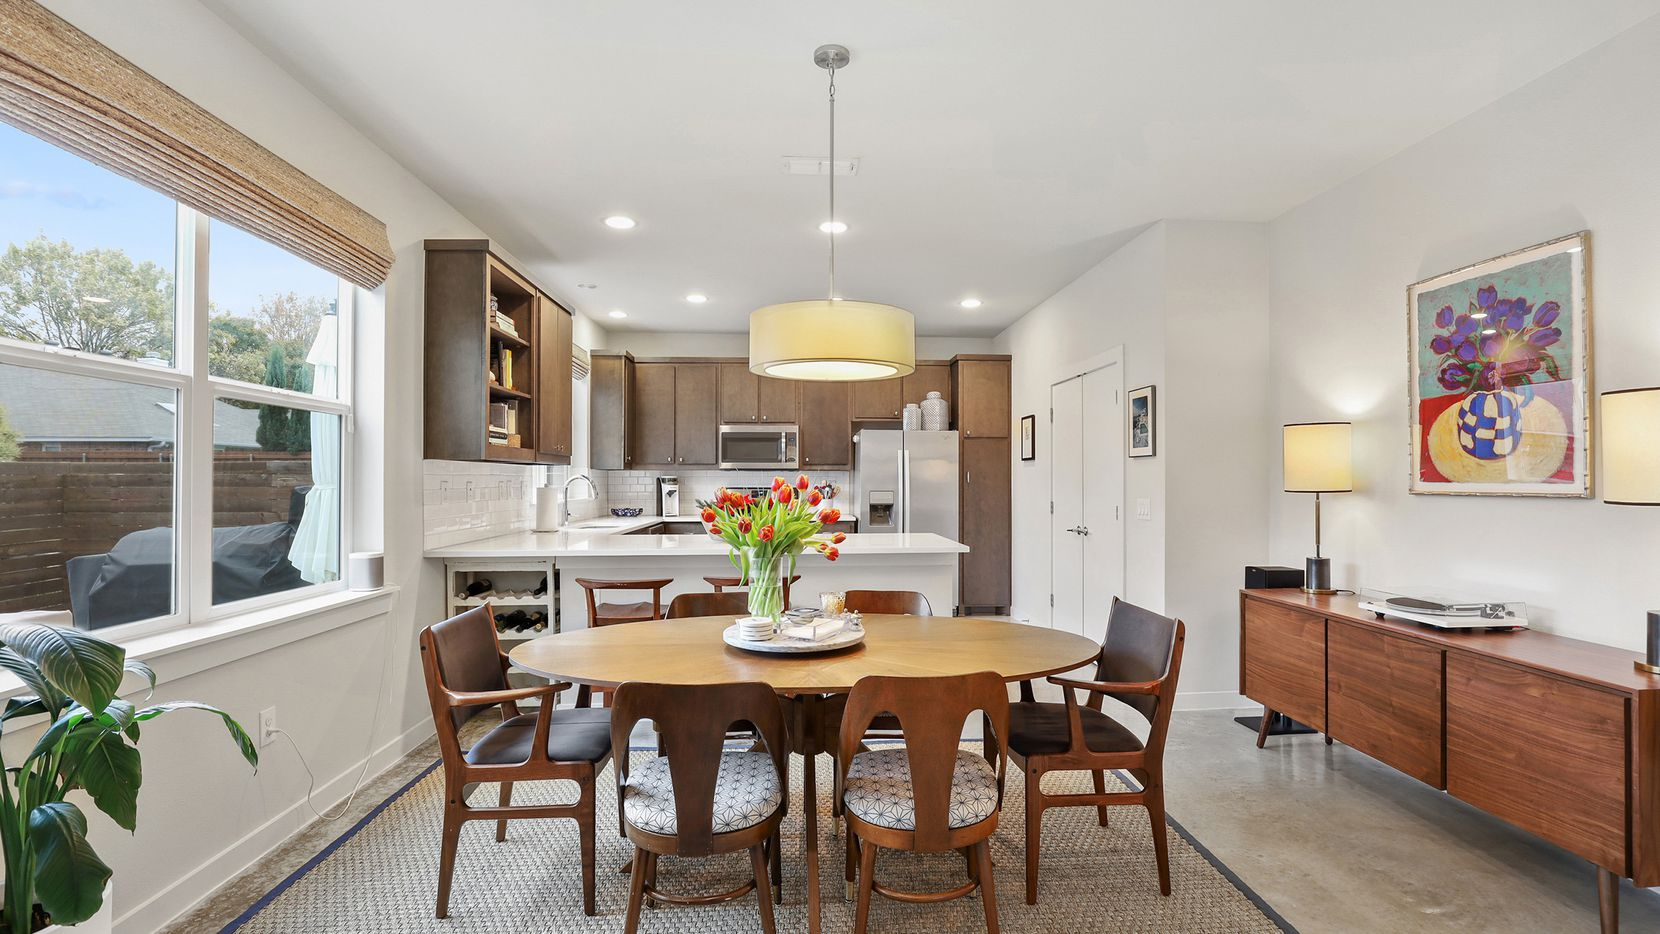 The four-bedroom home at 6568 Arborist Lane is near White Rock Lake.